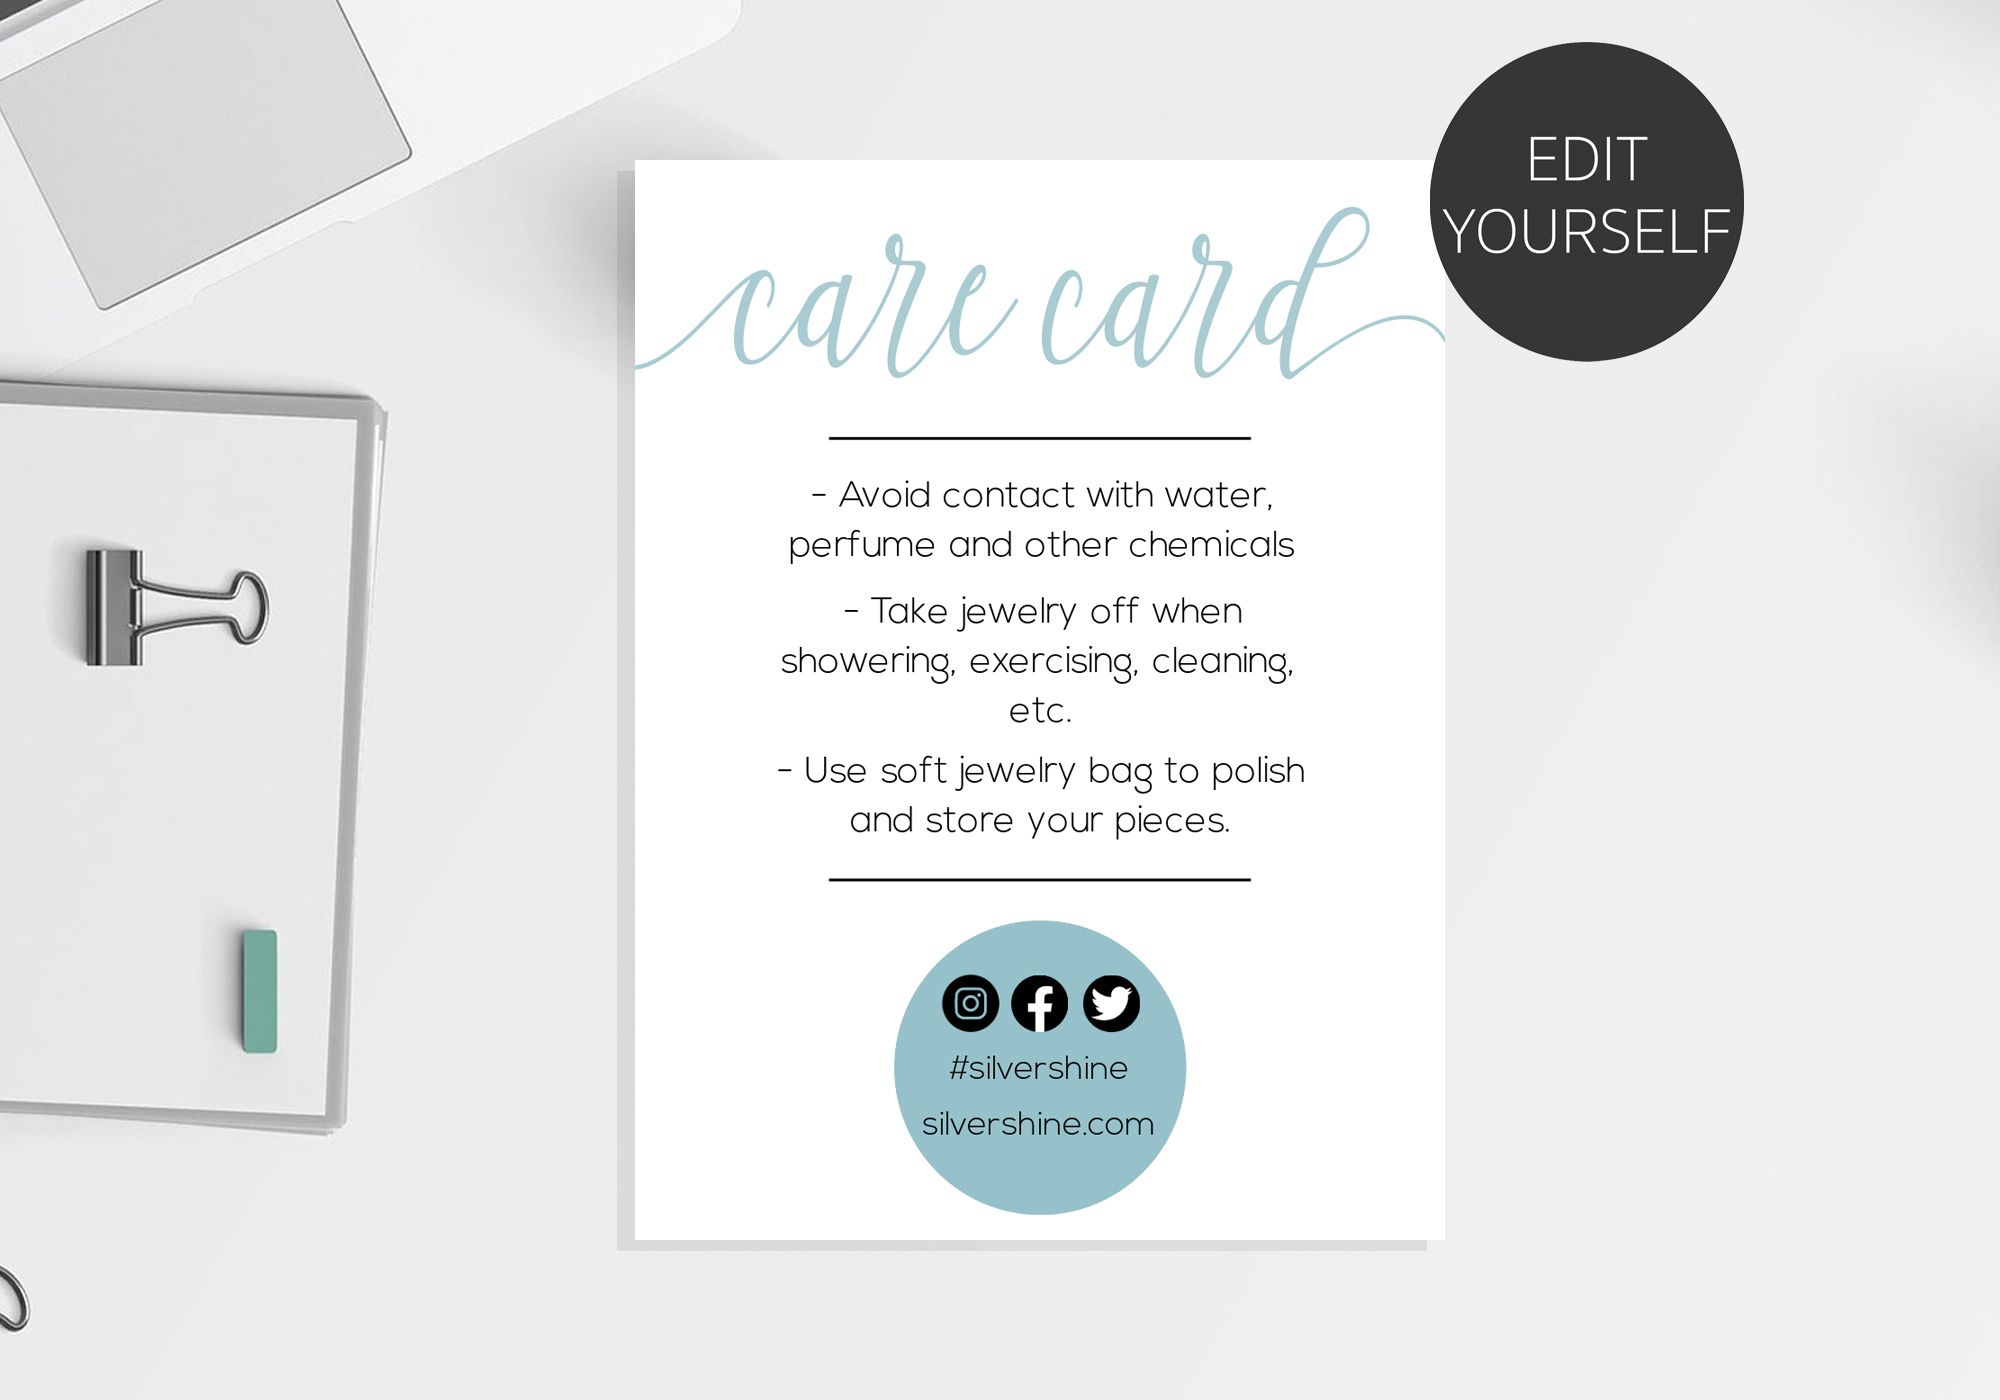 Care Card Care Instructions Card Care Card Template Jewelry Etsy In 2021 Cards Jewelry Care Instructions Card Template